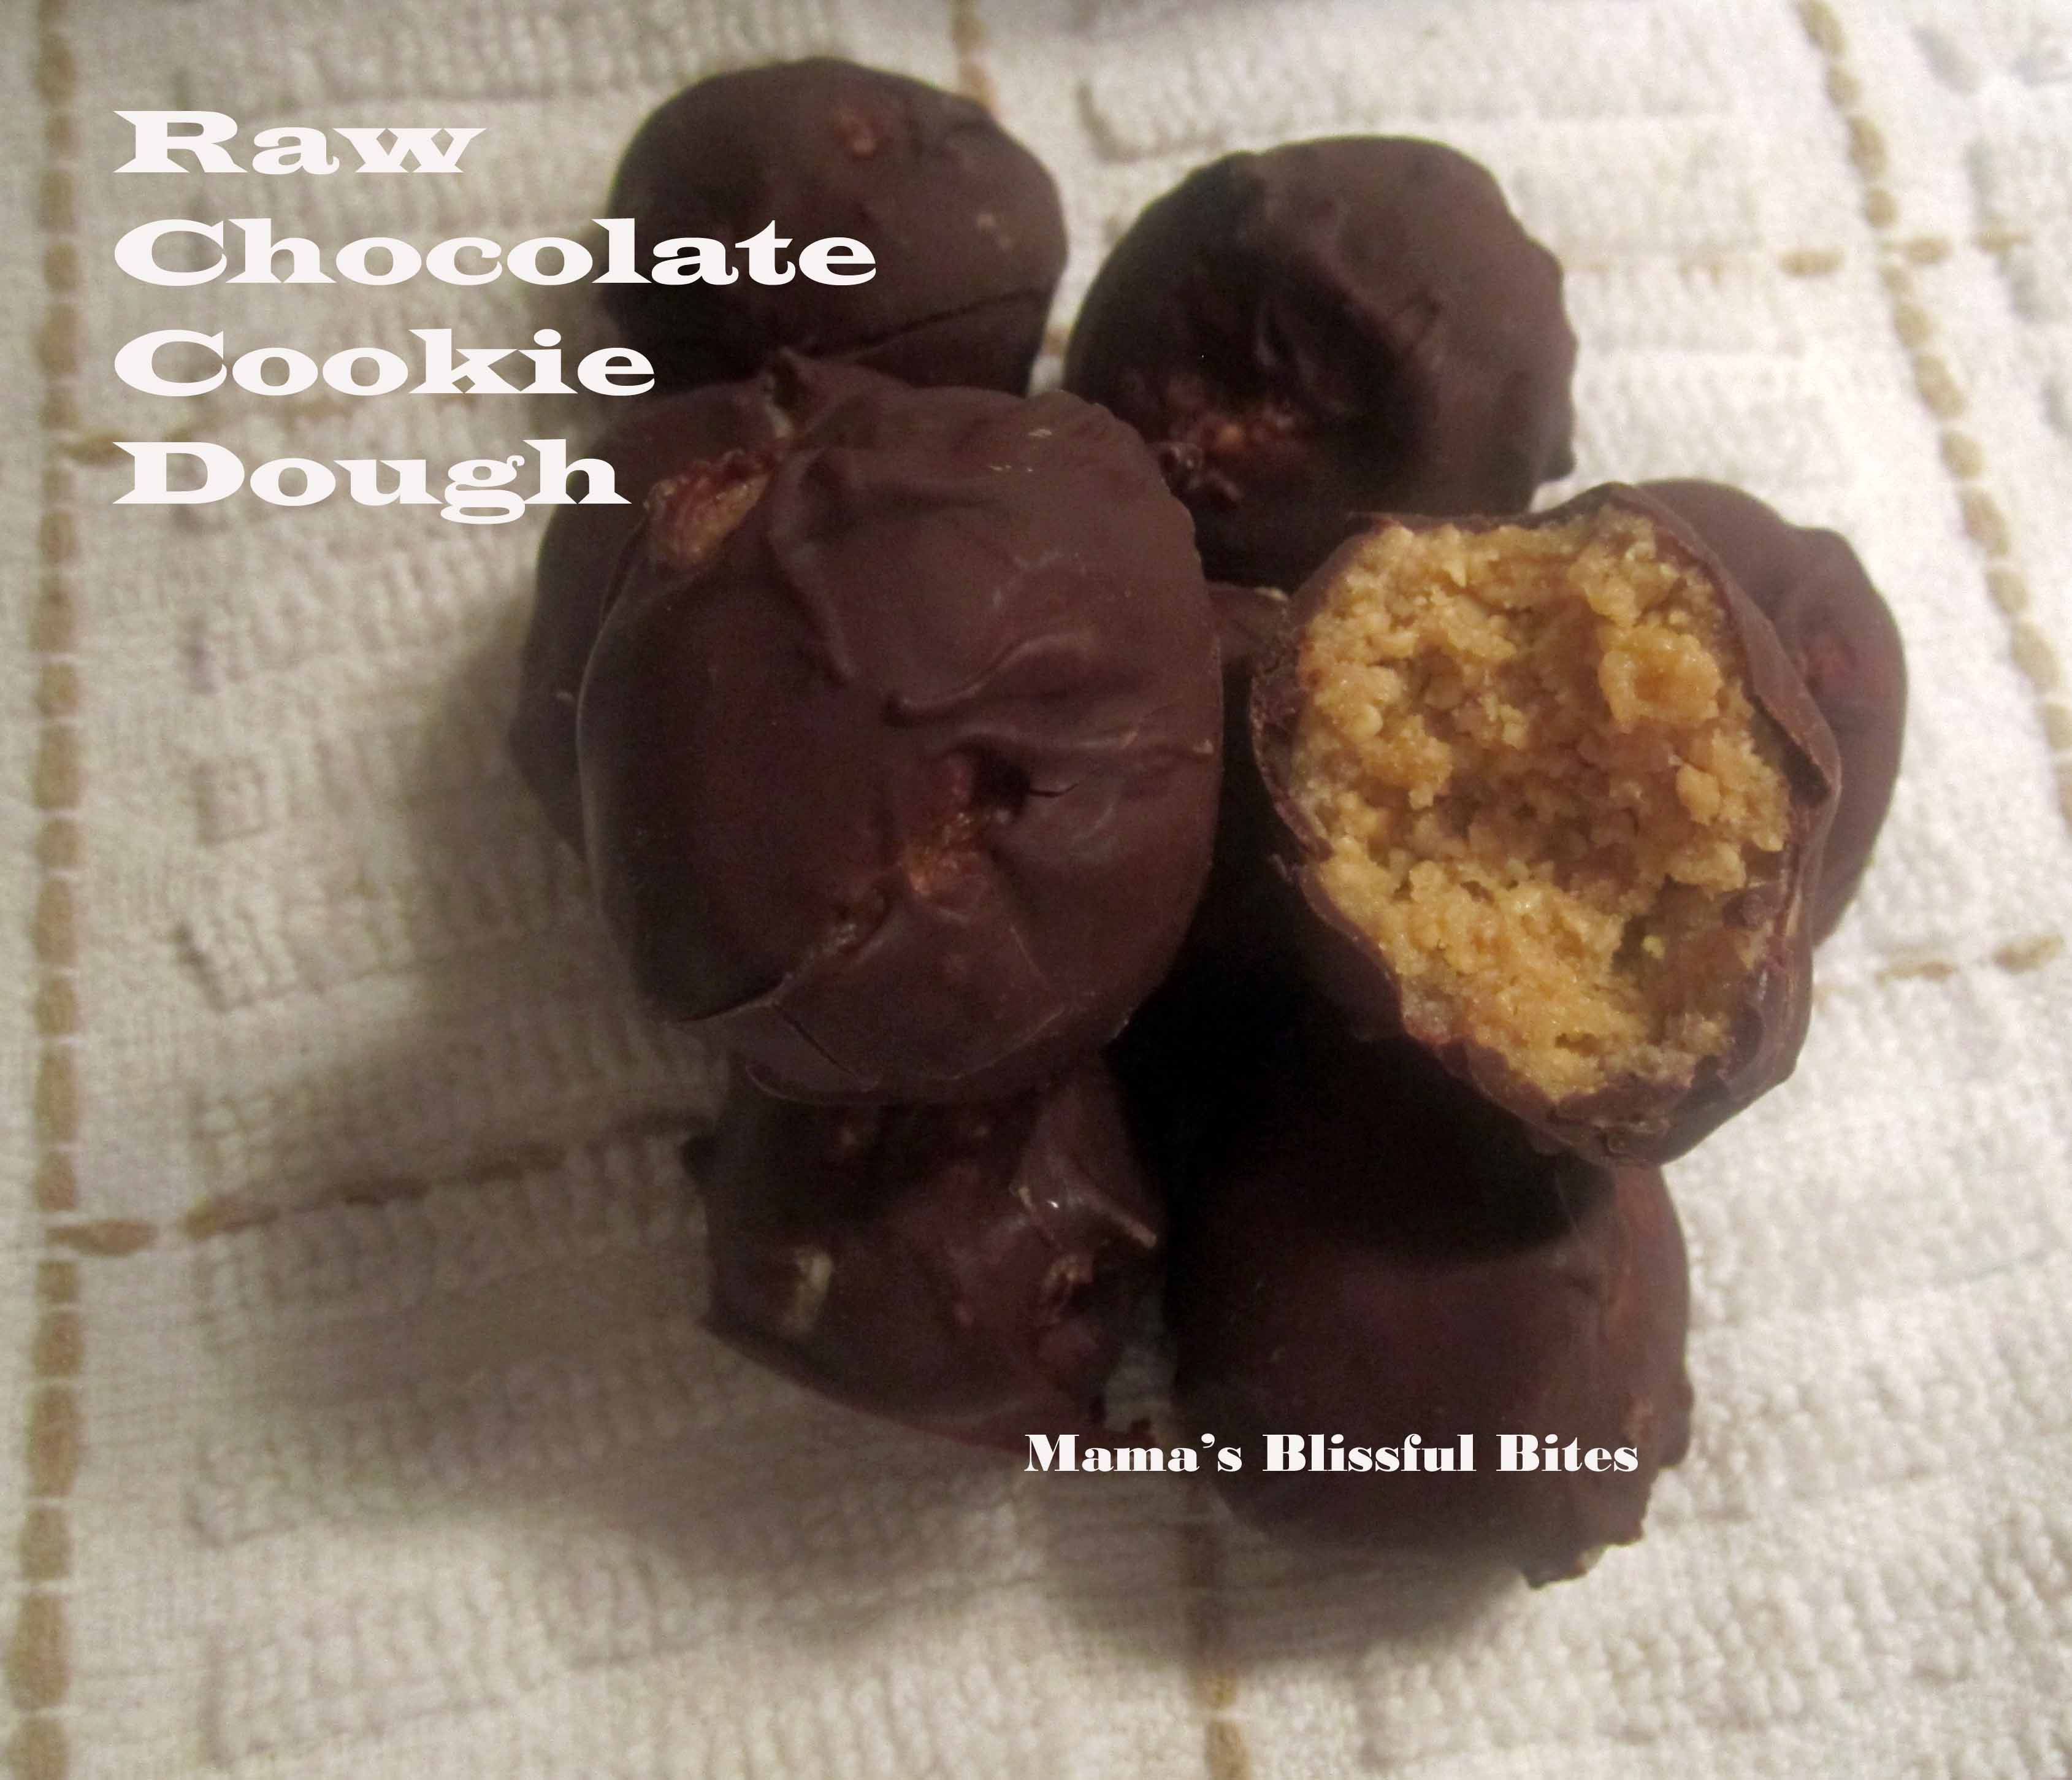 Raw Chocolate Cookie Dough